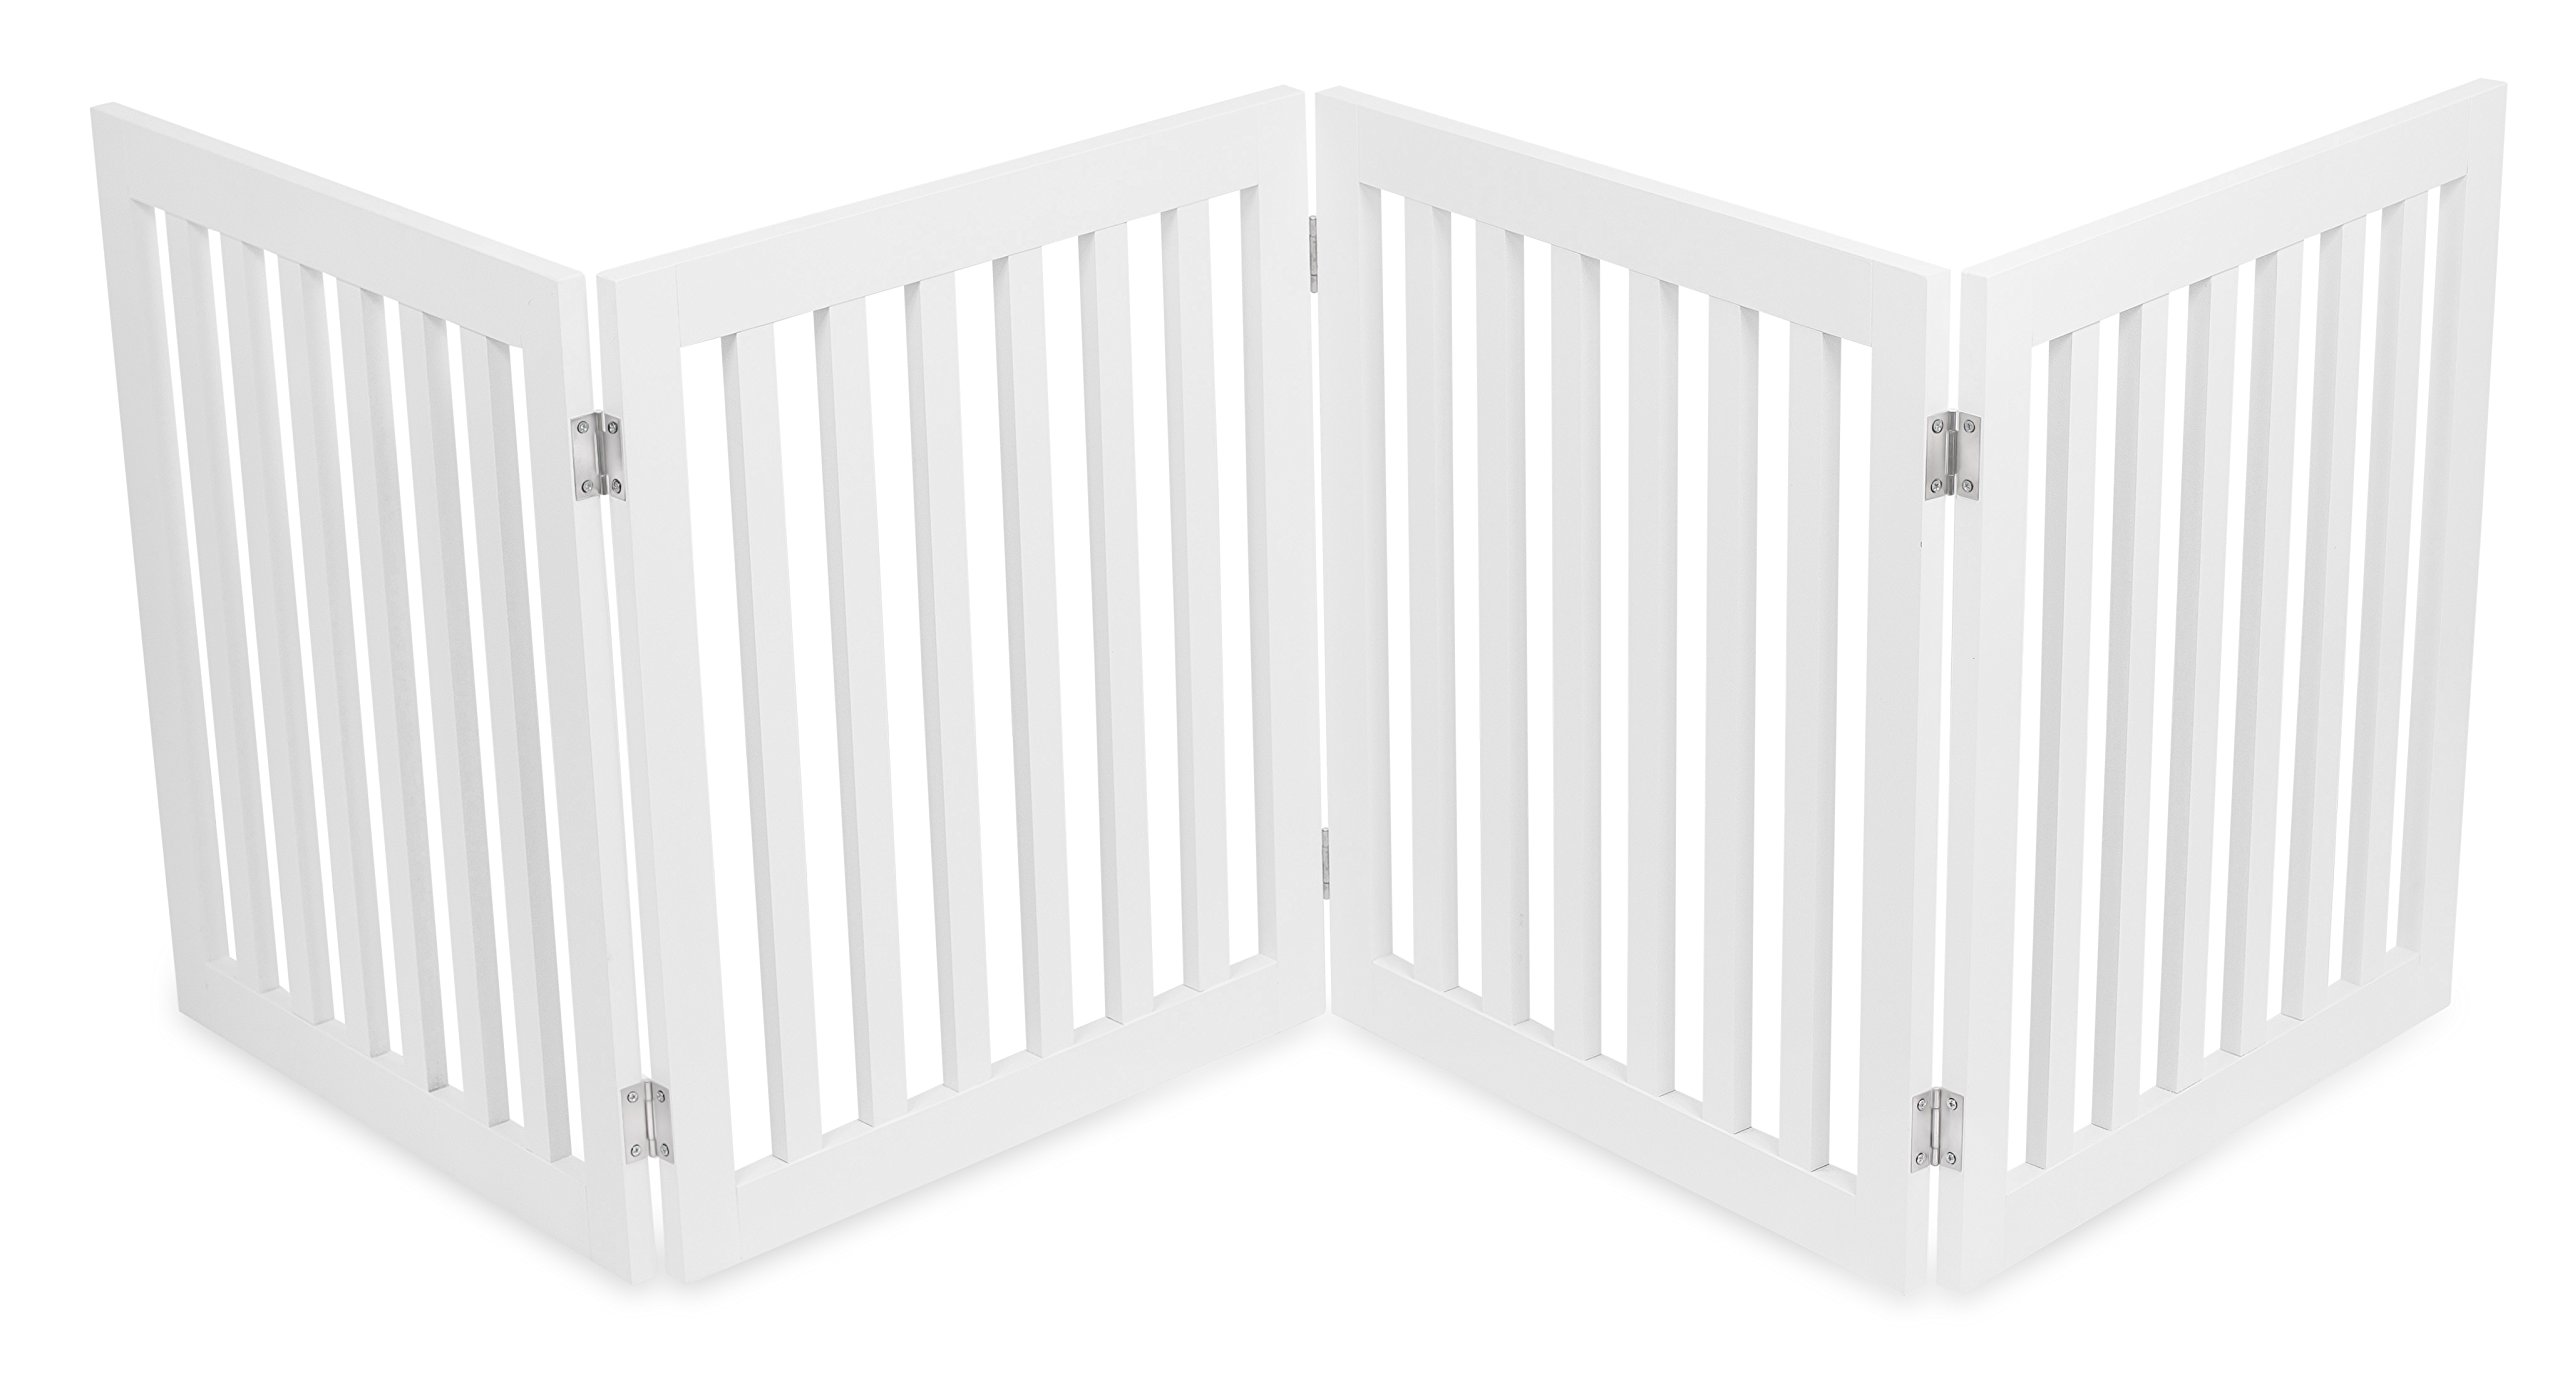 Internet's Best Traditional Pet Gate | 4 Panel | 24 Inch Step Over Fence | Free Standing Folding Z Shape Indoor Doorway Hall Stairs Dog Puppy Gate | White | Wooden